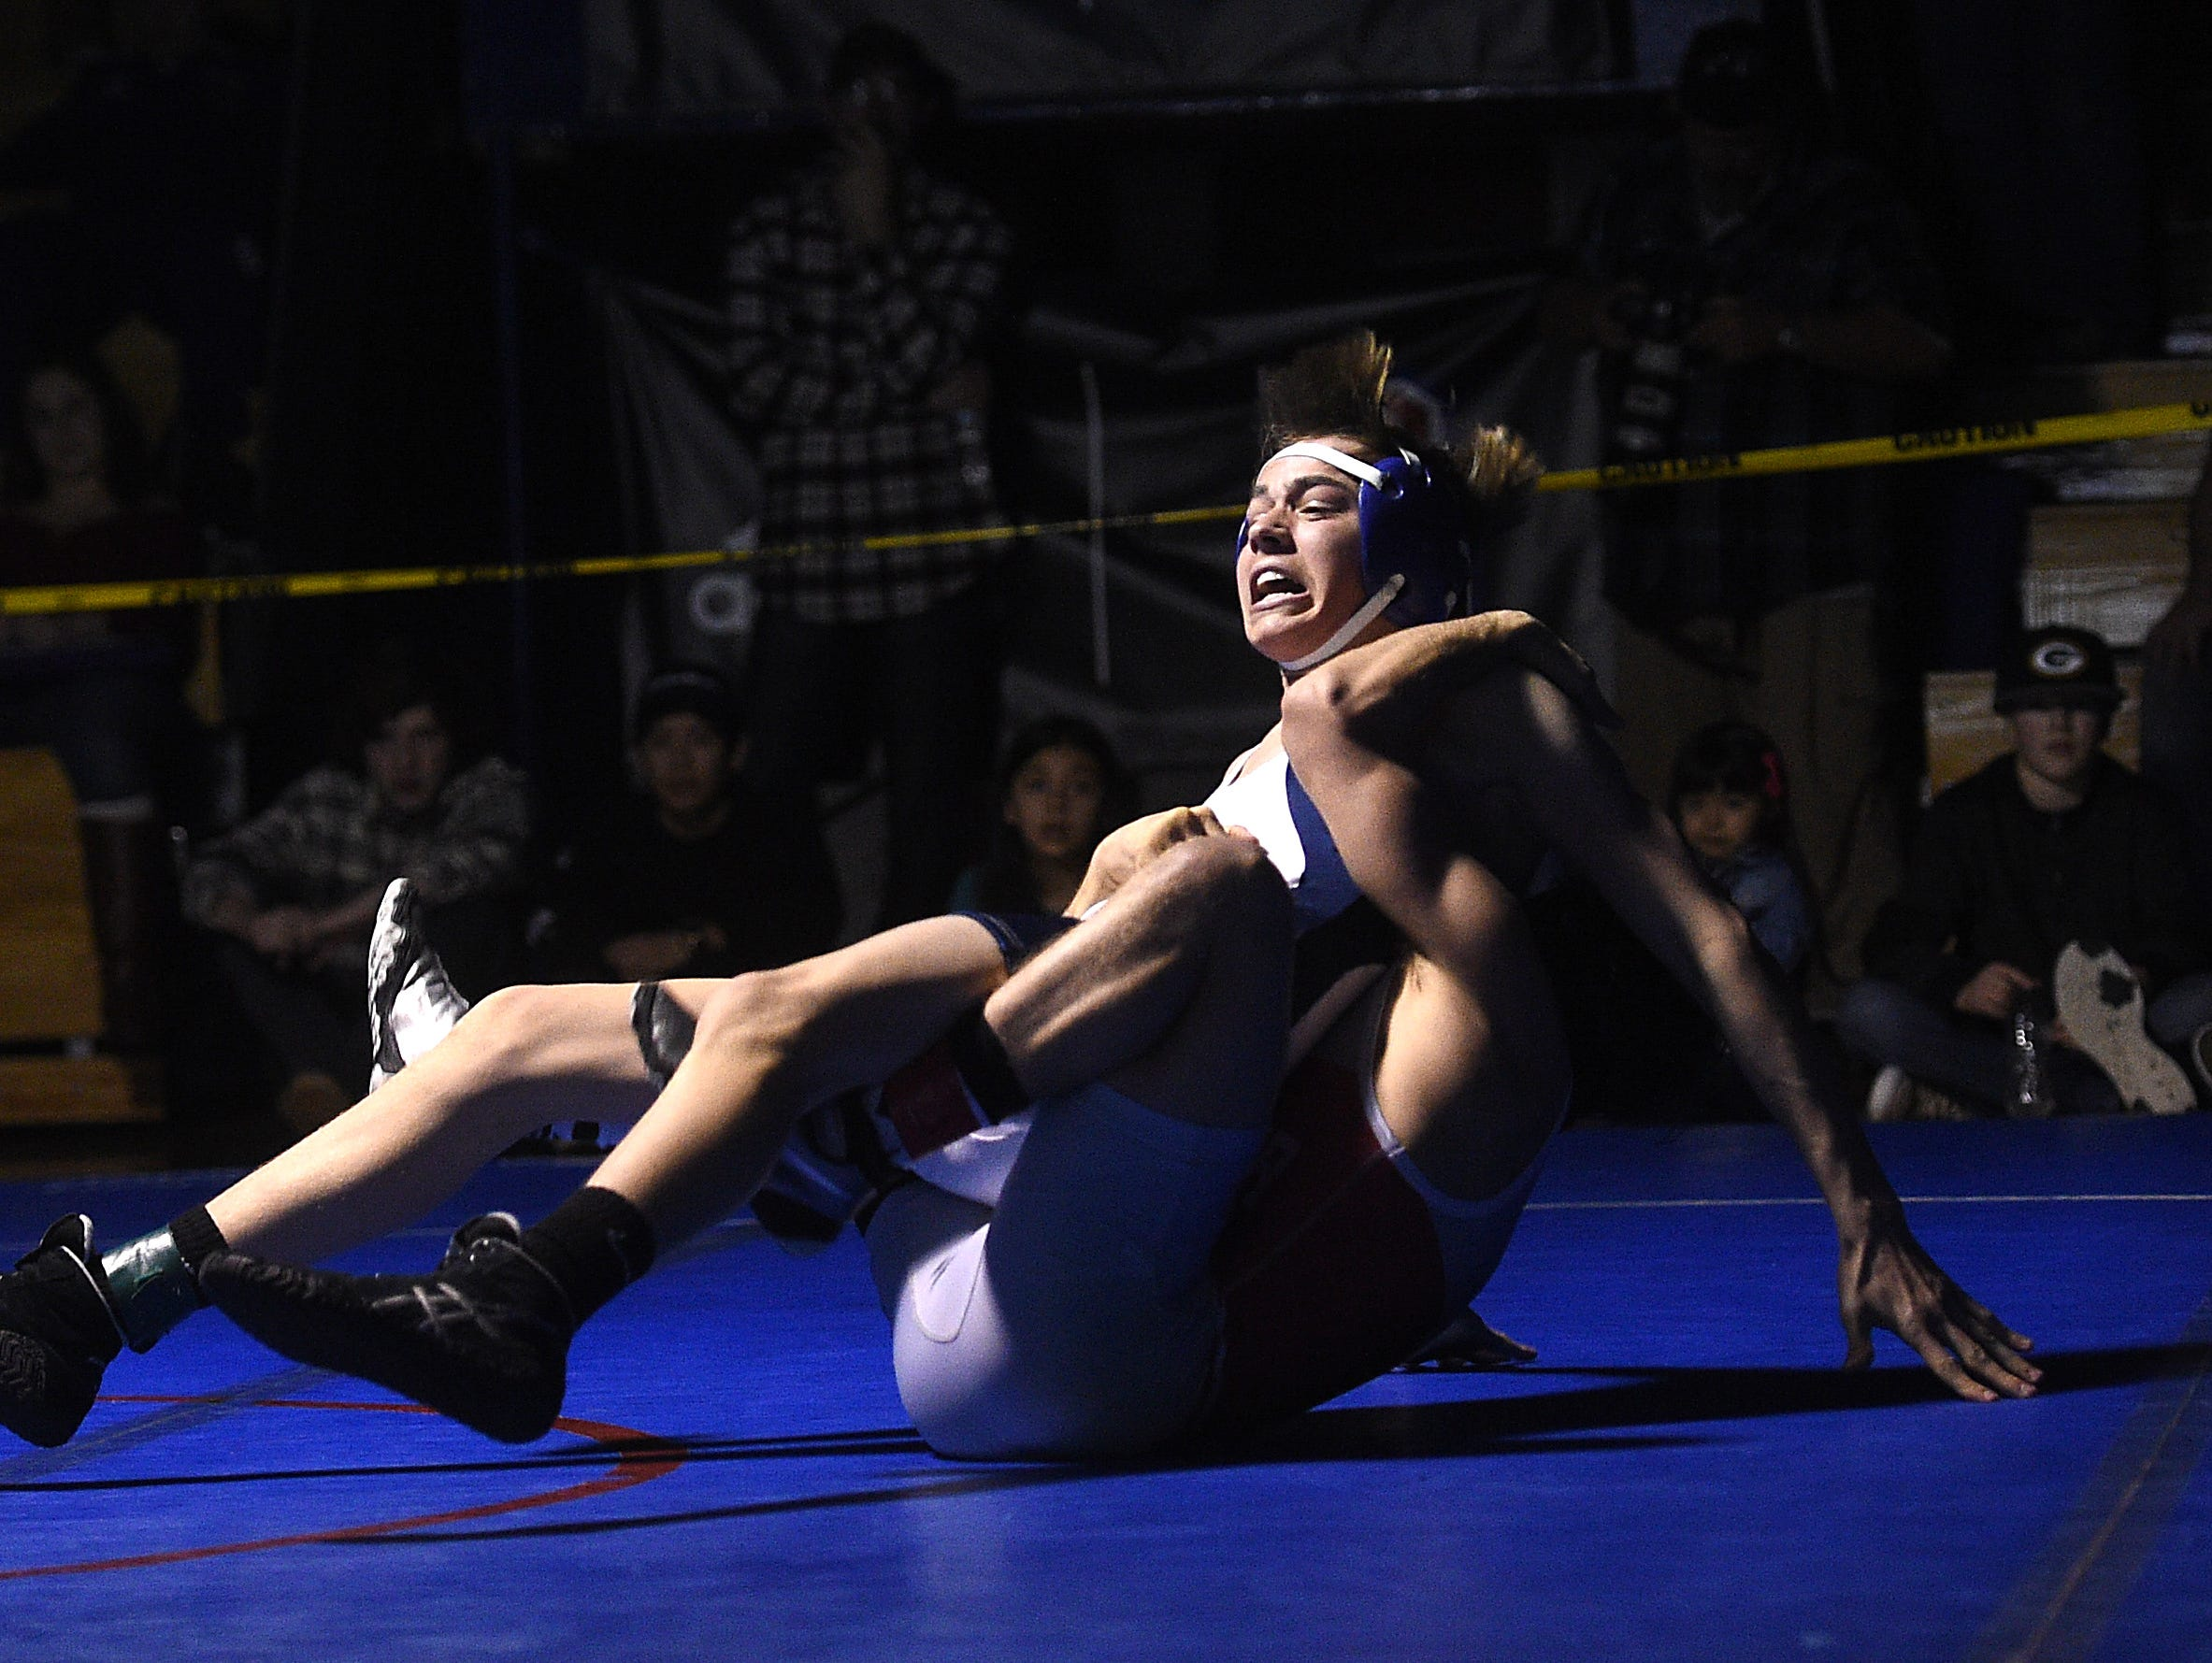 Wooster's Ian Timmins, bottom, defeats Reno's Frankie Giovanetti to win the 126-pound division during the 4A Northern Region Wrestling championships at Reno High School on Saturday